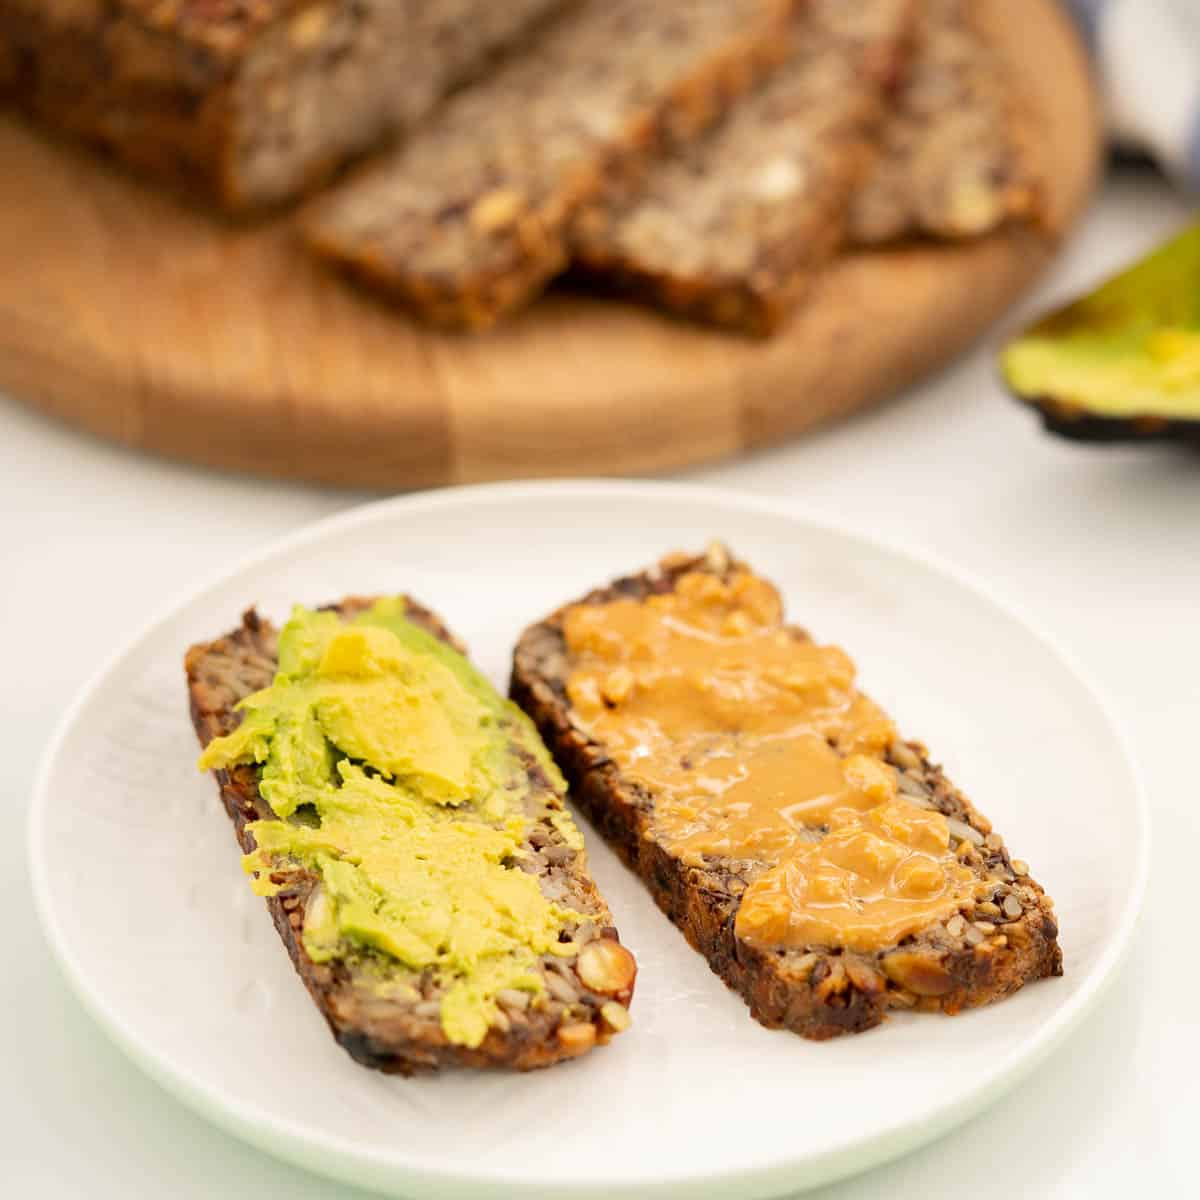 2 slices of oat toast spread with avocado and peanut butter.